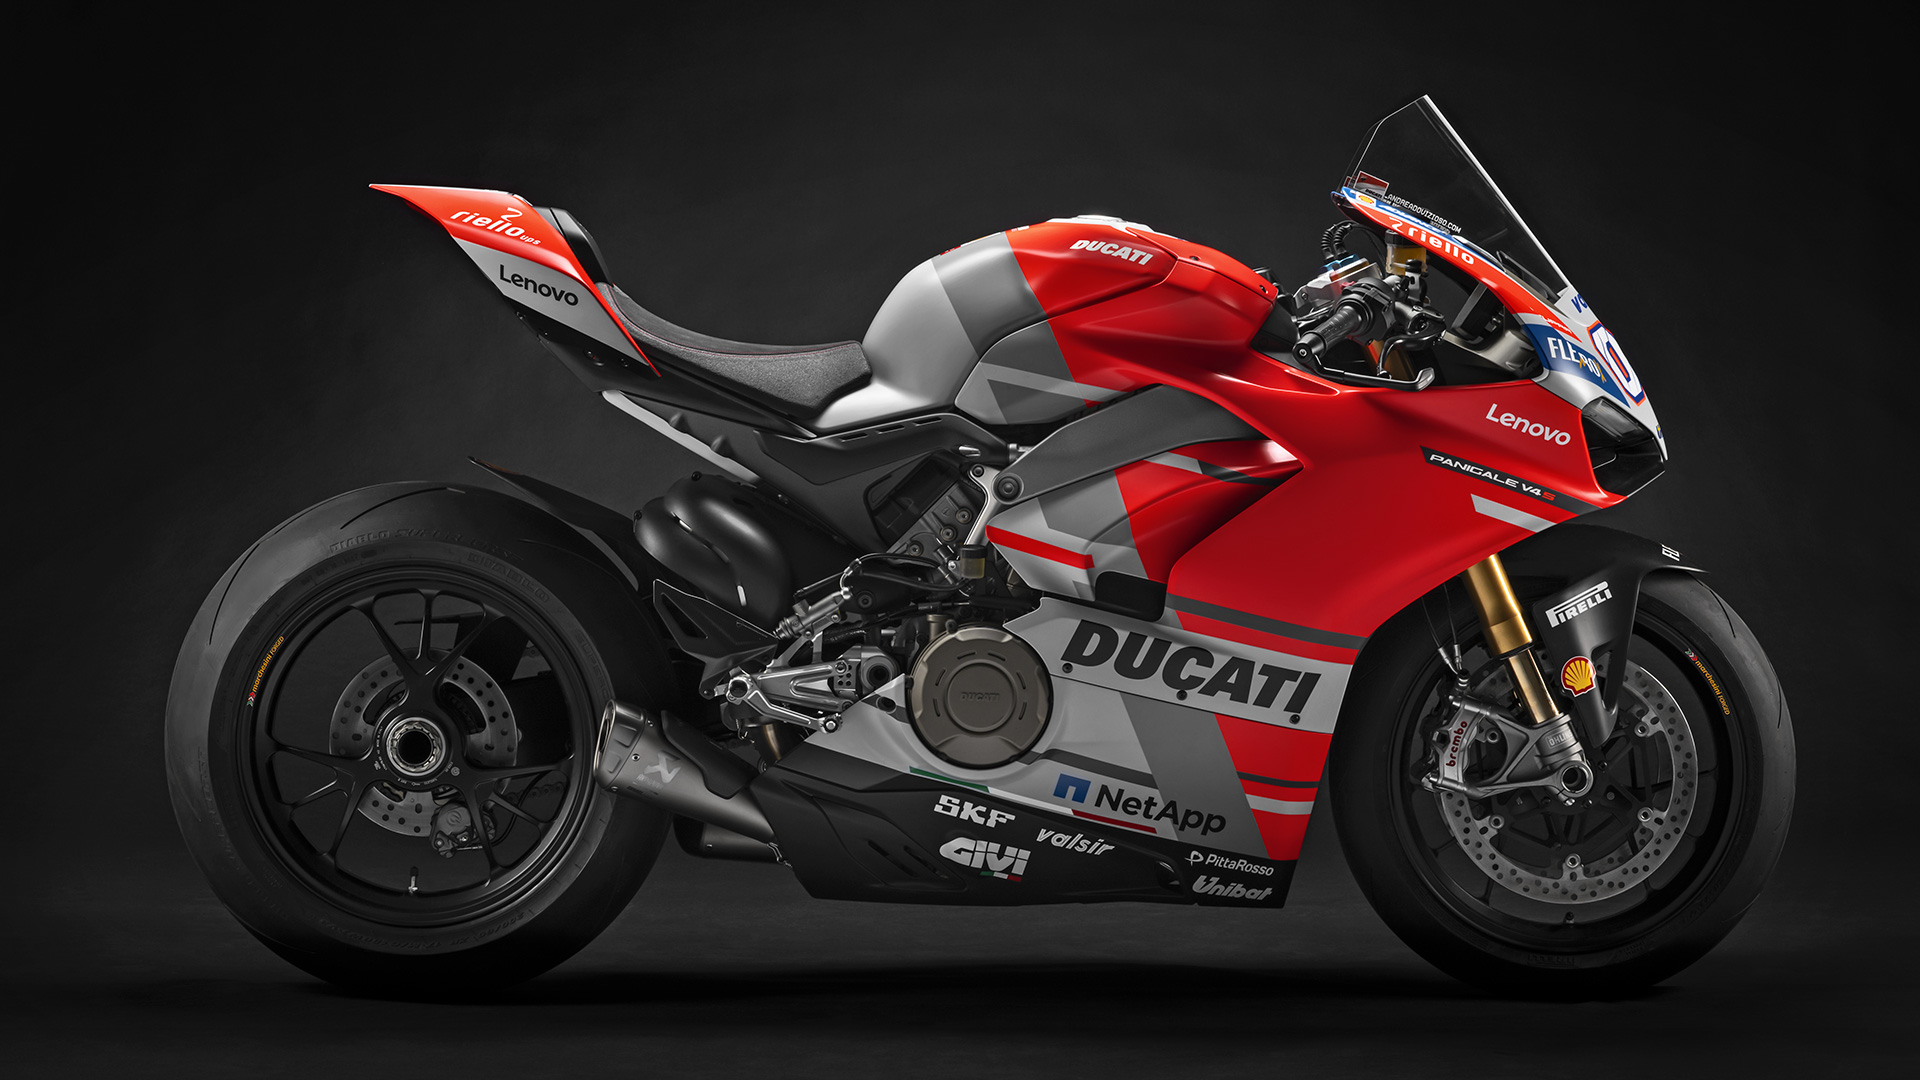 Used  Ducati  Panigale For Sale